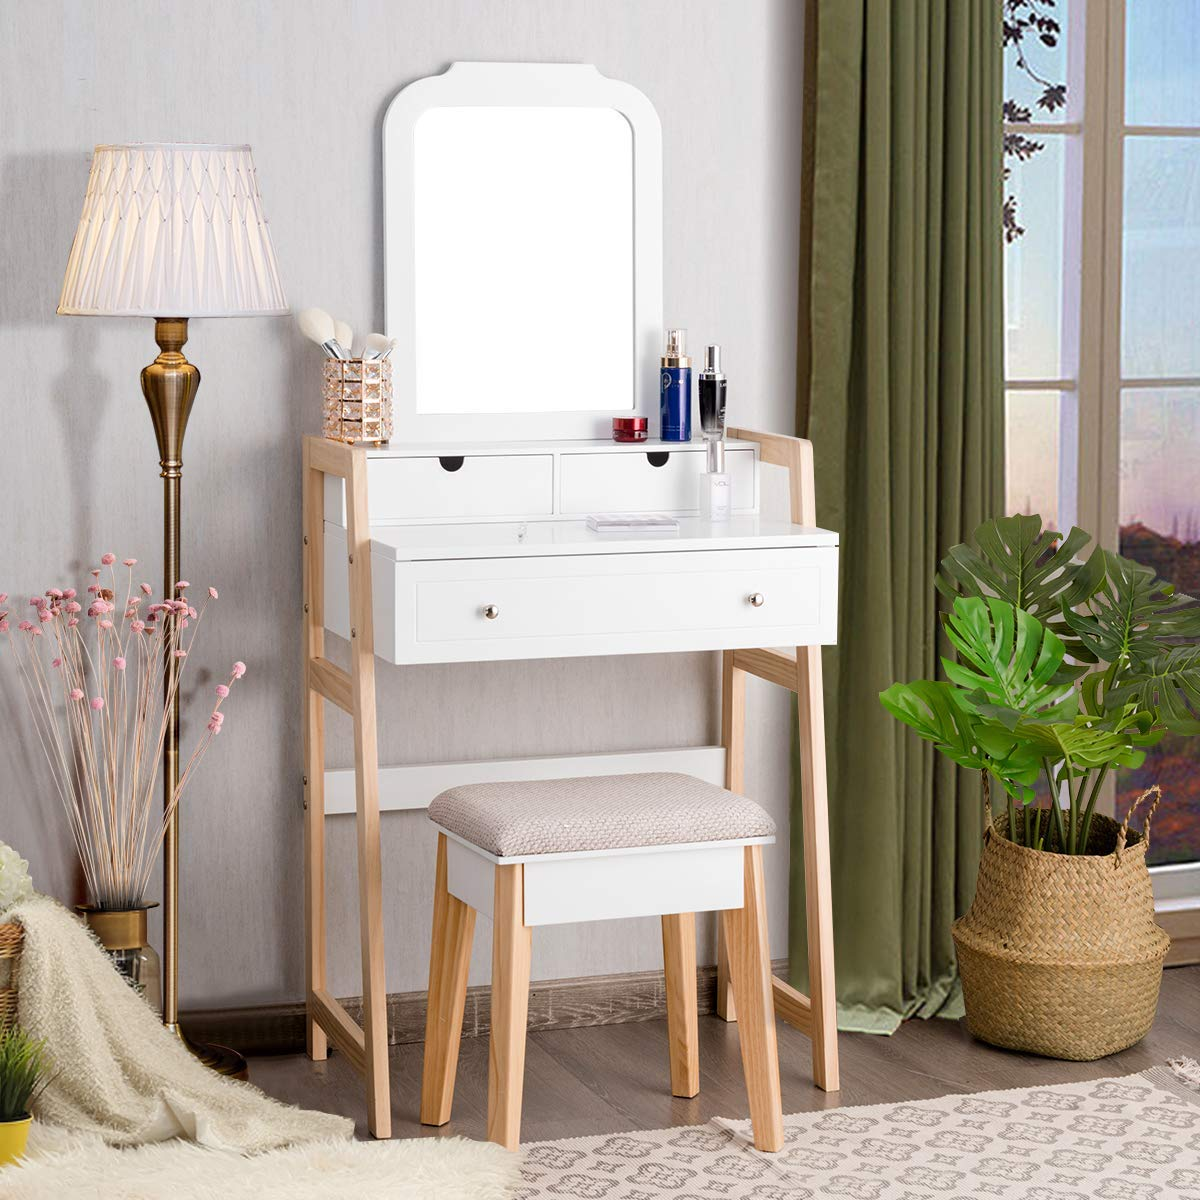 CHARMAID Vanity Set with 2-Tier Tabletop 3 Drawers, 25 Dressing Table with Large Mirror and Cushioned Stool, Ideal for Small Place Apartment, Unique Chic Design, Makeup Table Set for Women Girls